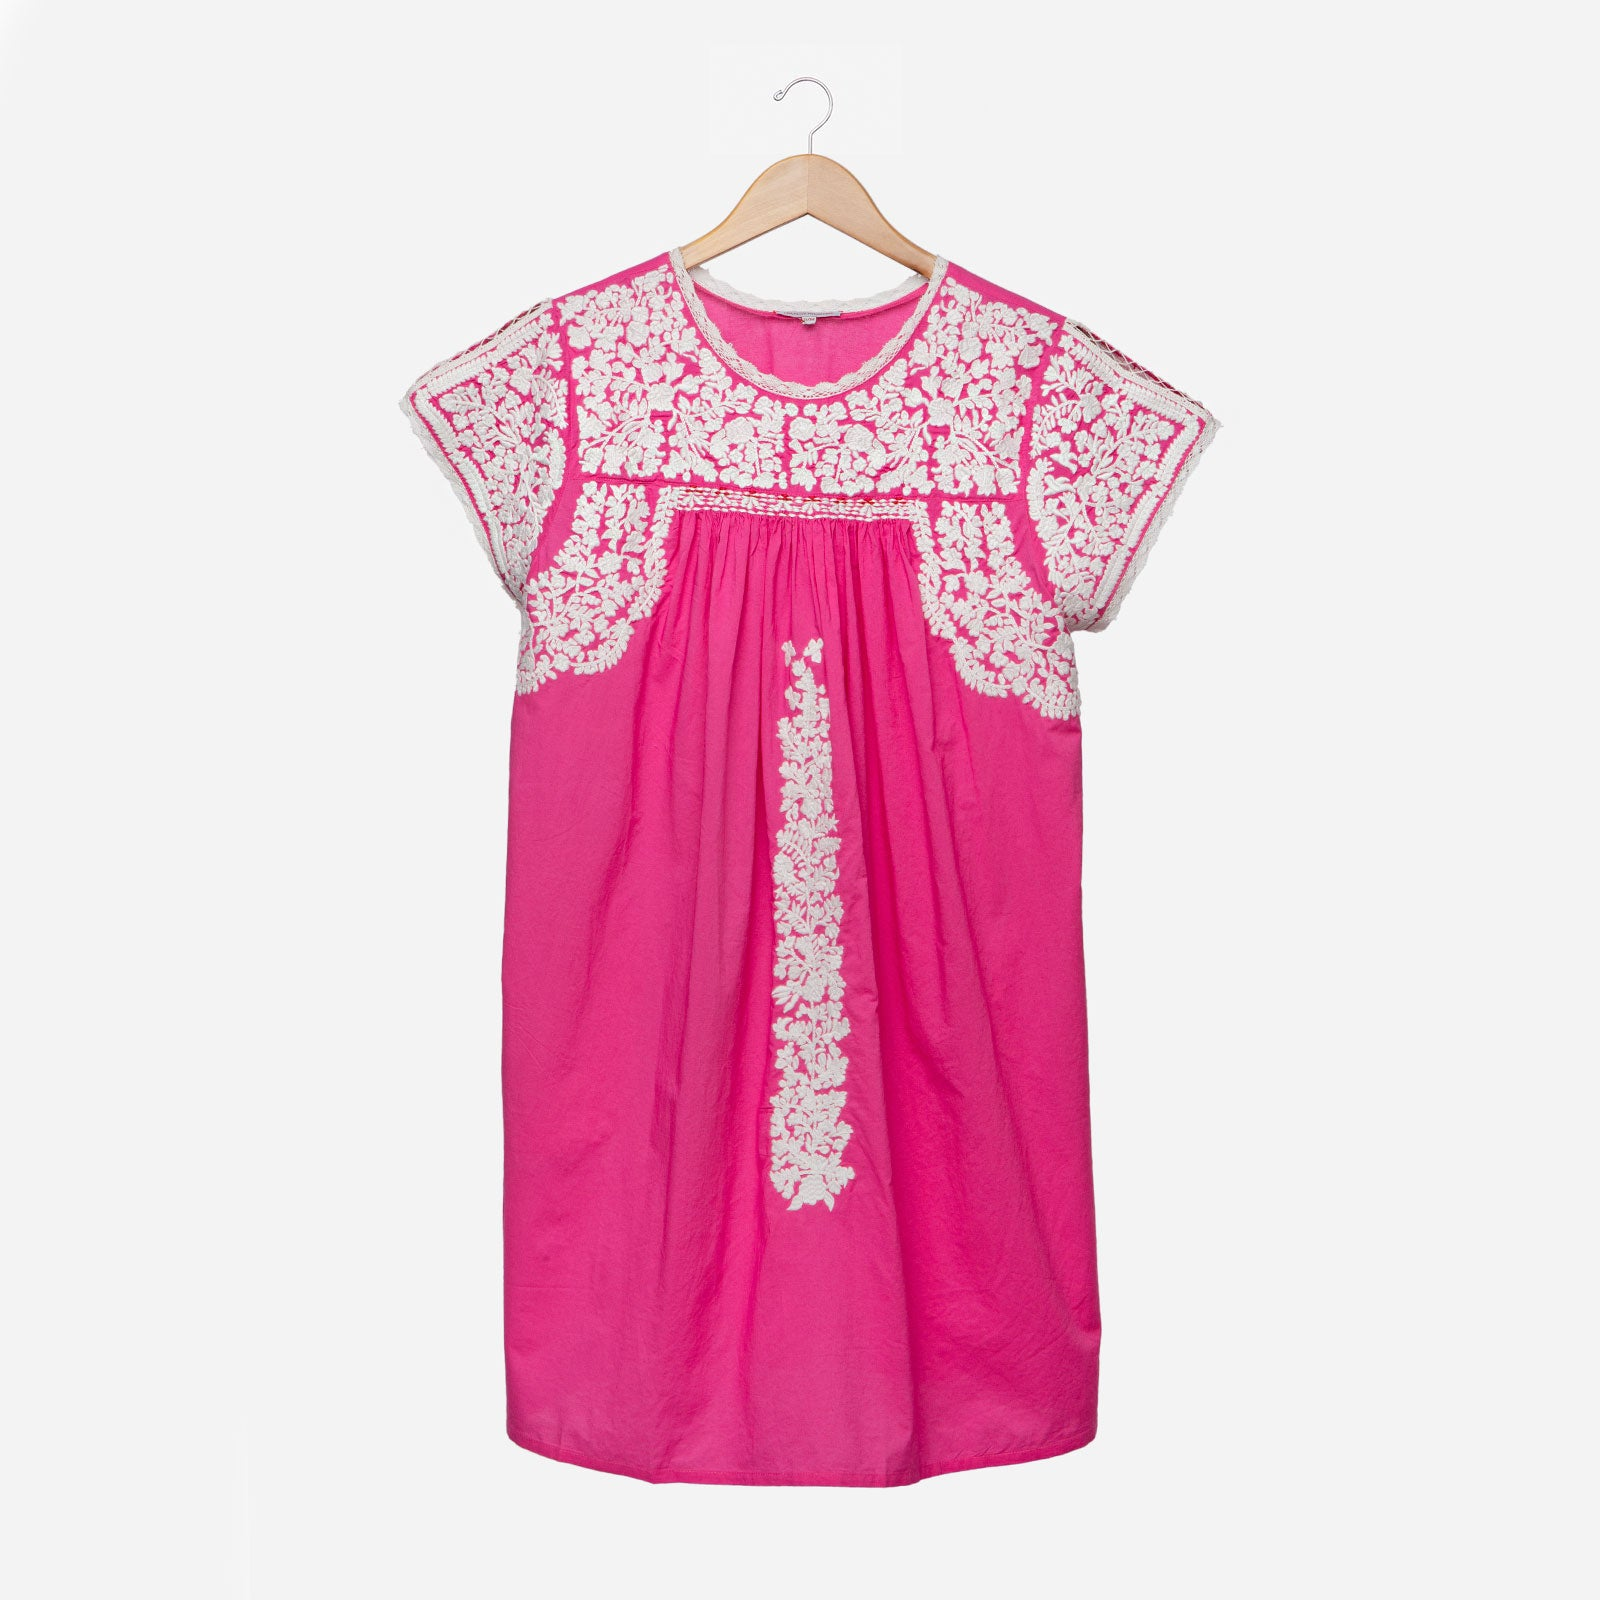 Floral Embroidered Lace Dress Pink Oyster - Frances Valentine